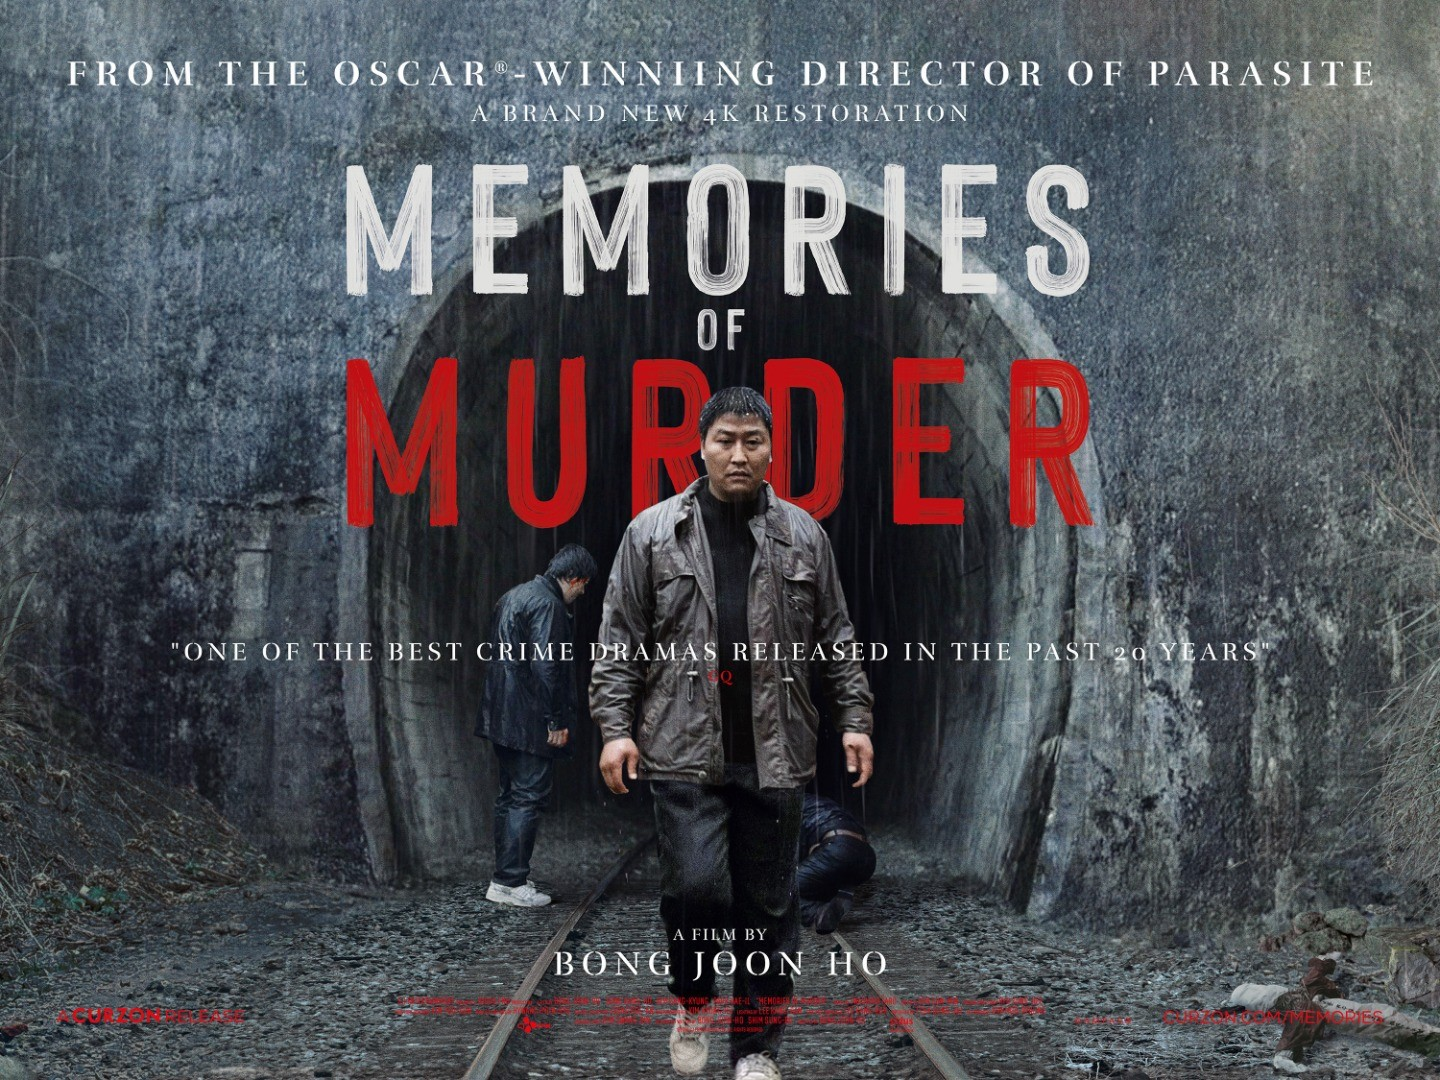 Memories of Murder (S)